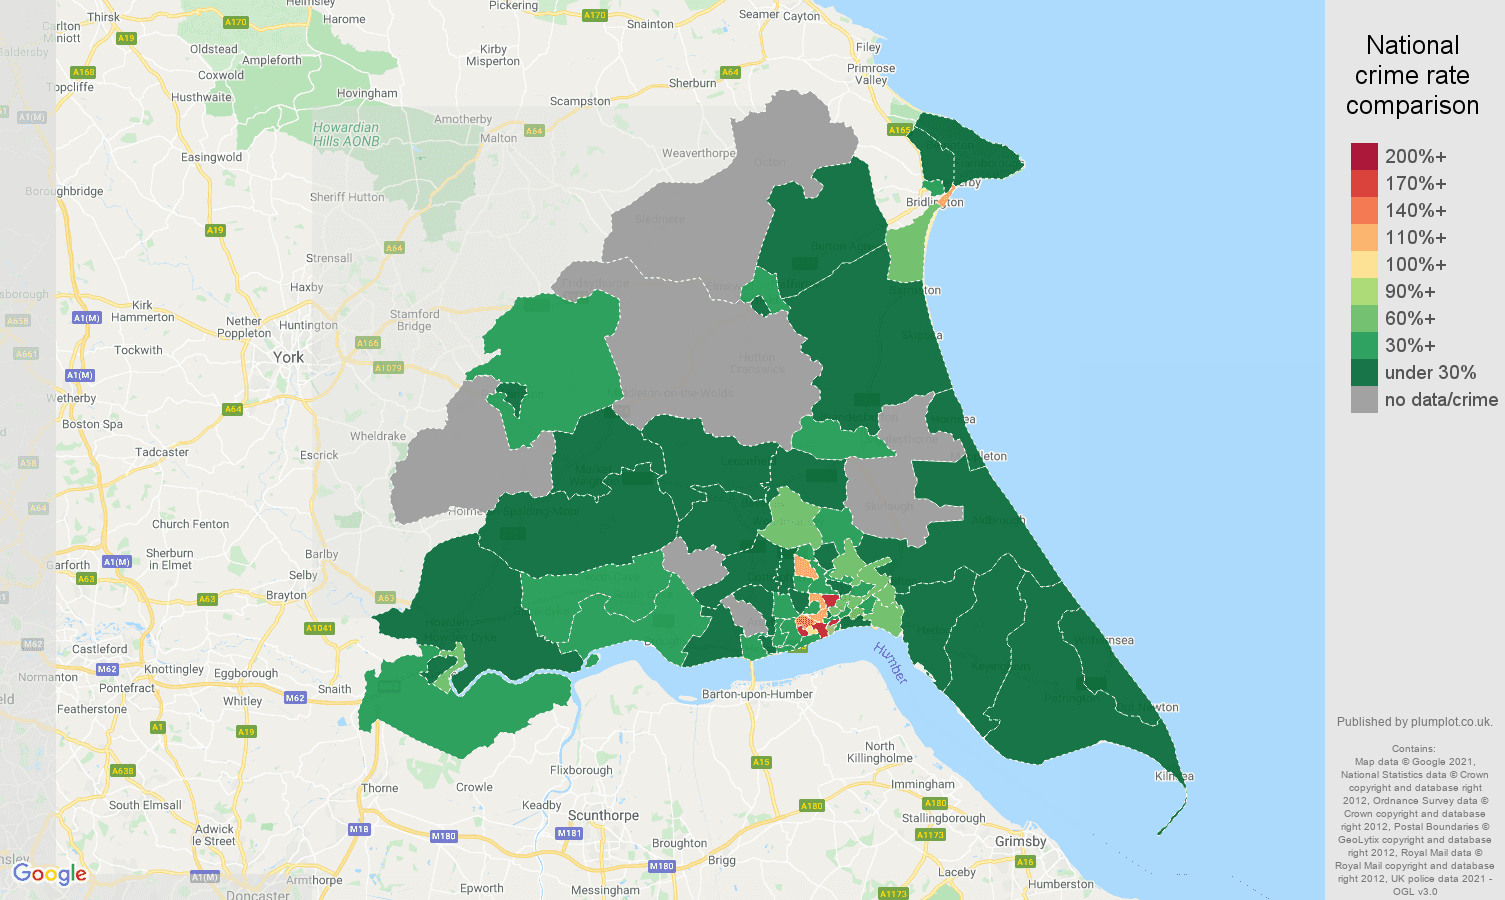 East Riding of Yorkshire drugs crime rate comparison map